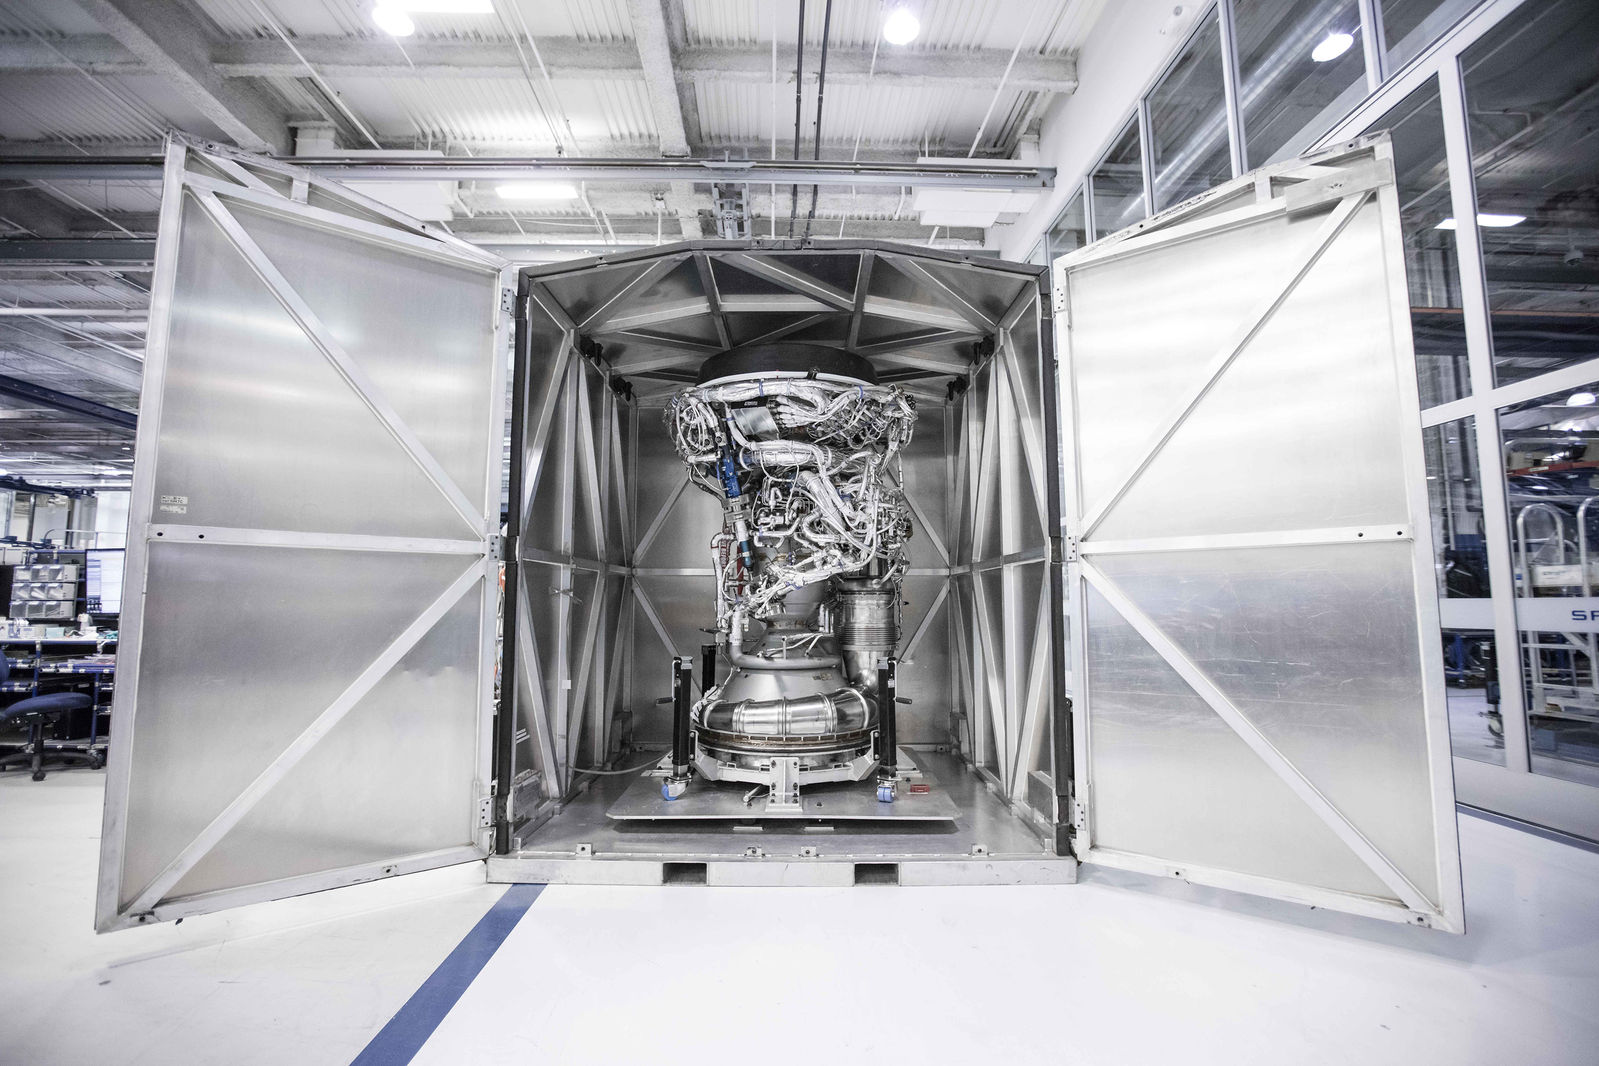 SpaceX Merlin rocket engine explodes during testing at Texas facility